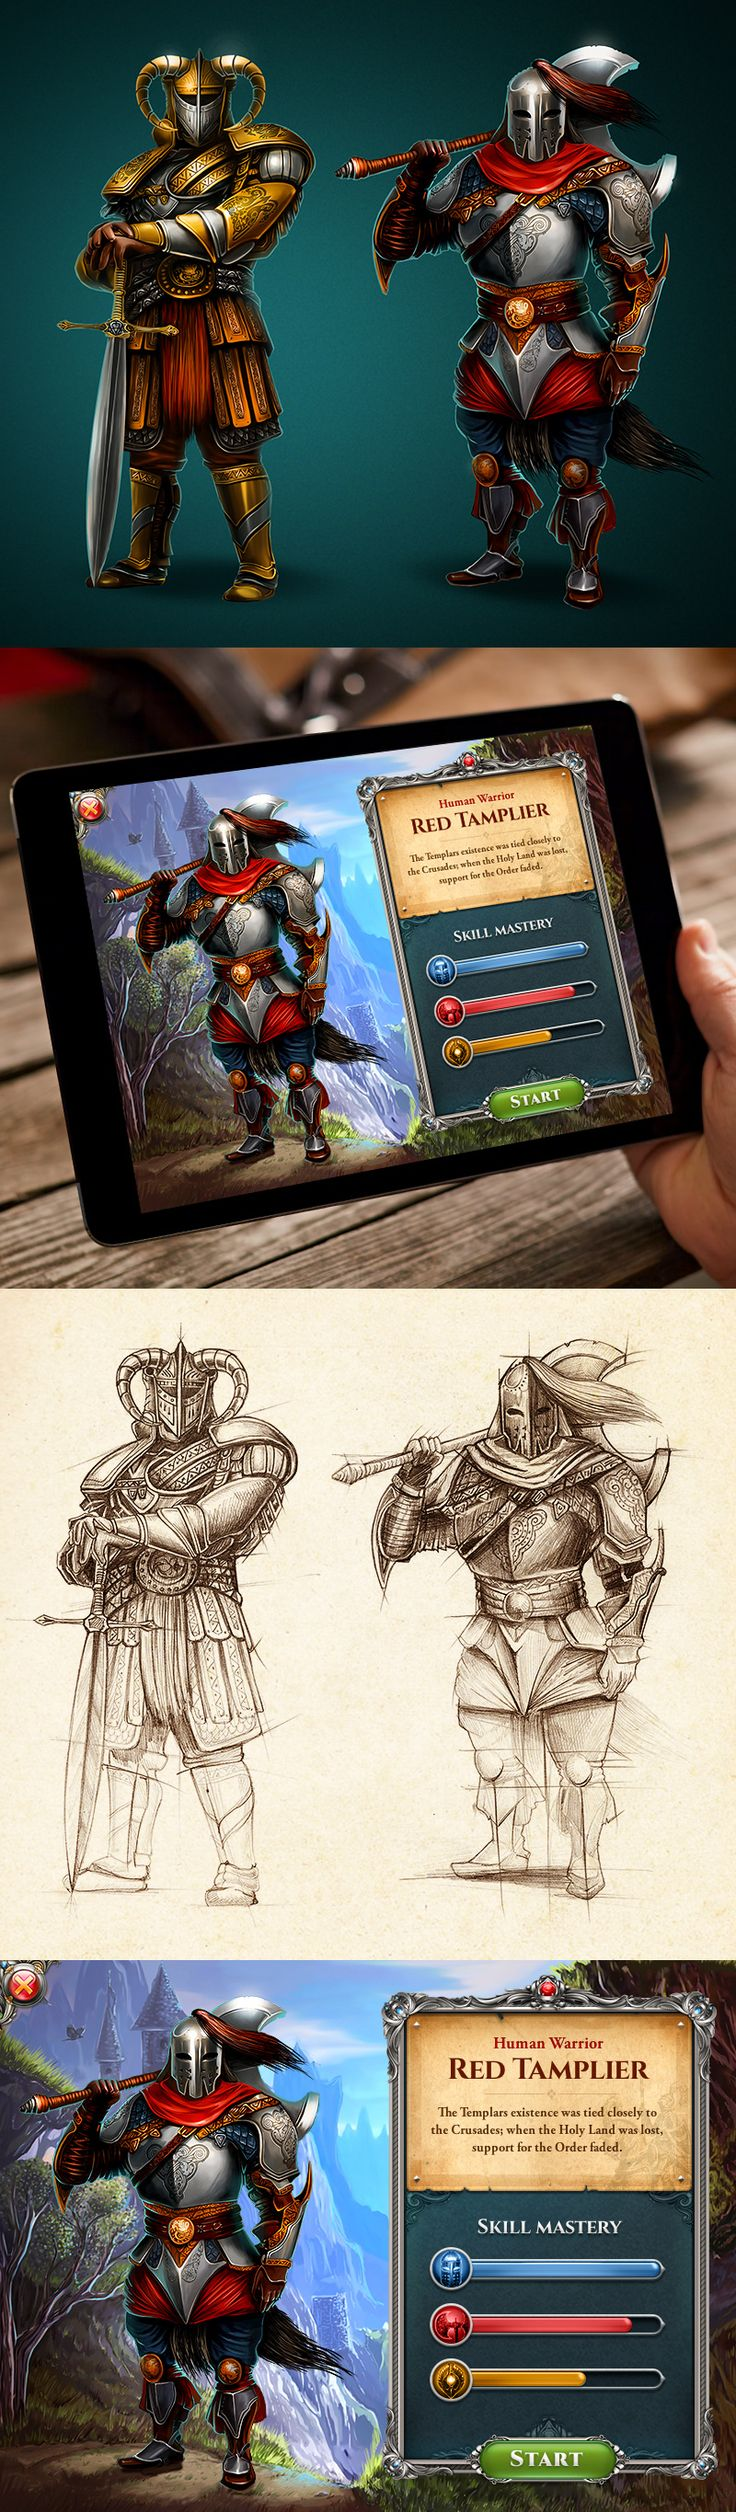 Another part of the interface for a role-playing game, including character design and game art.